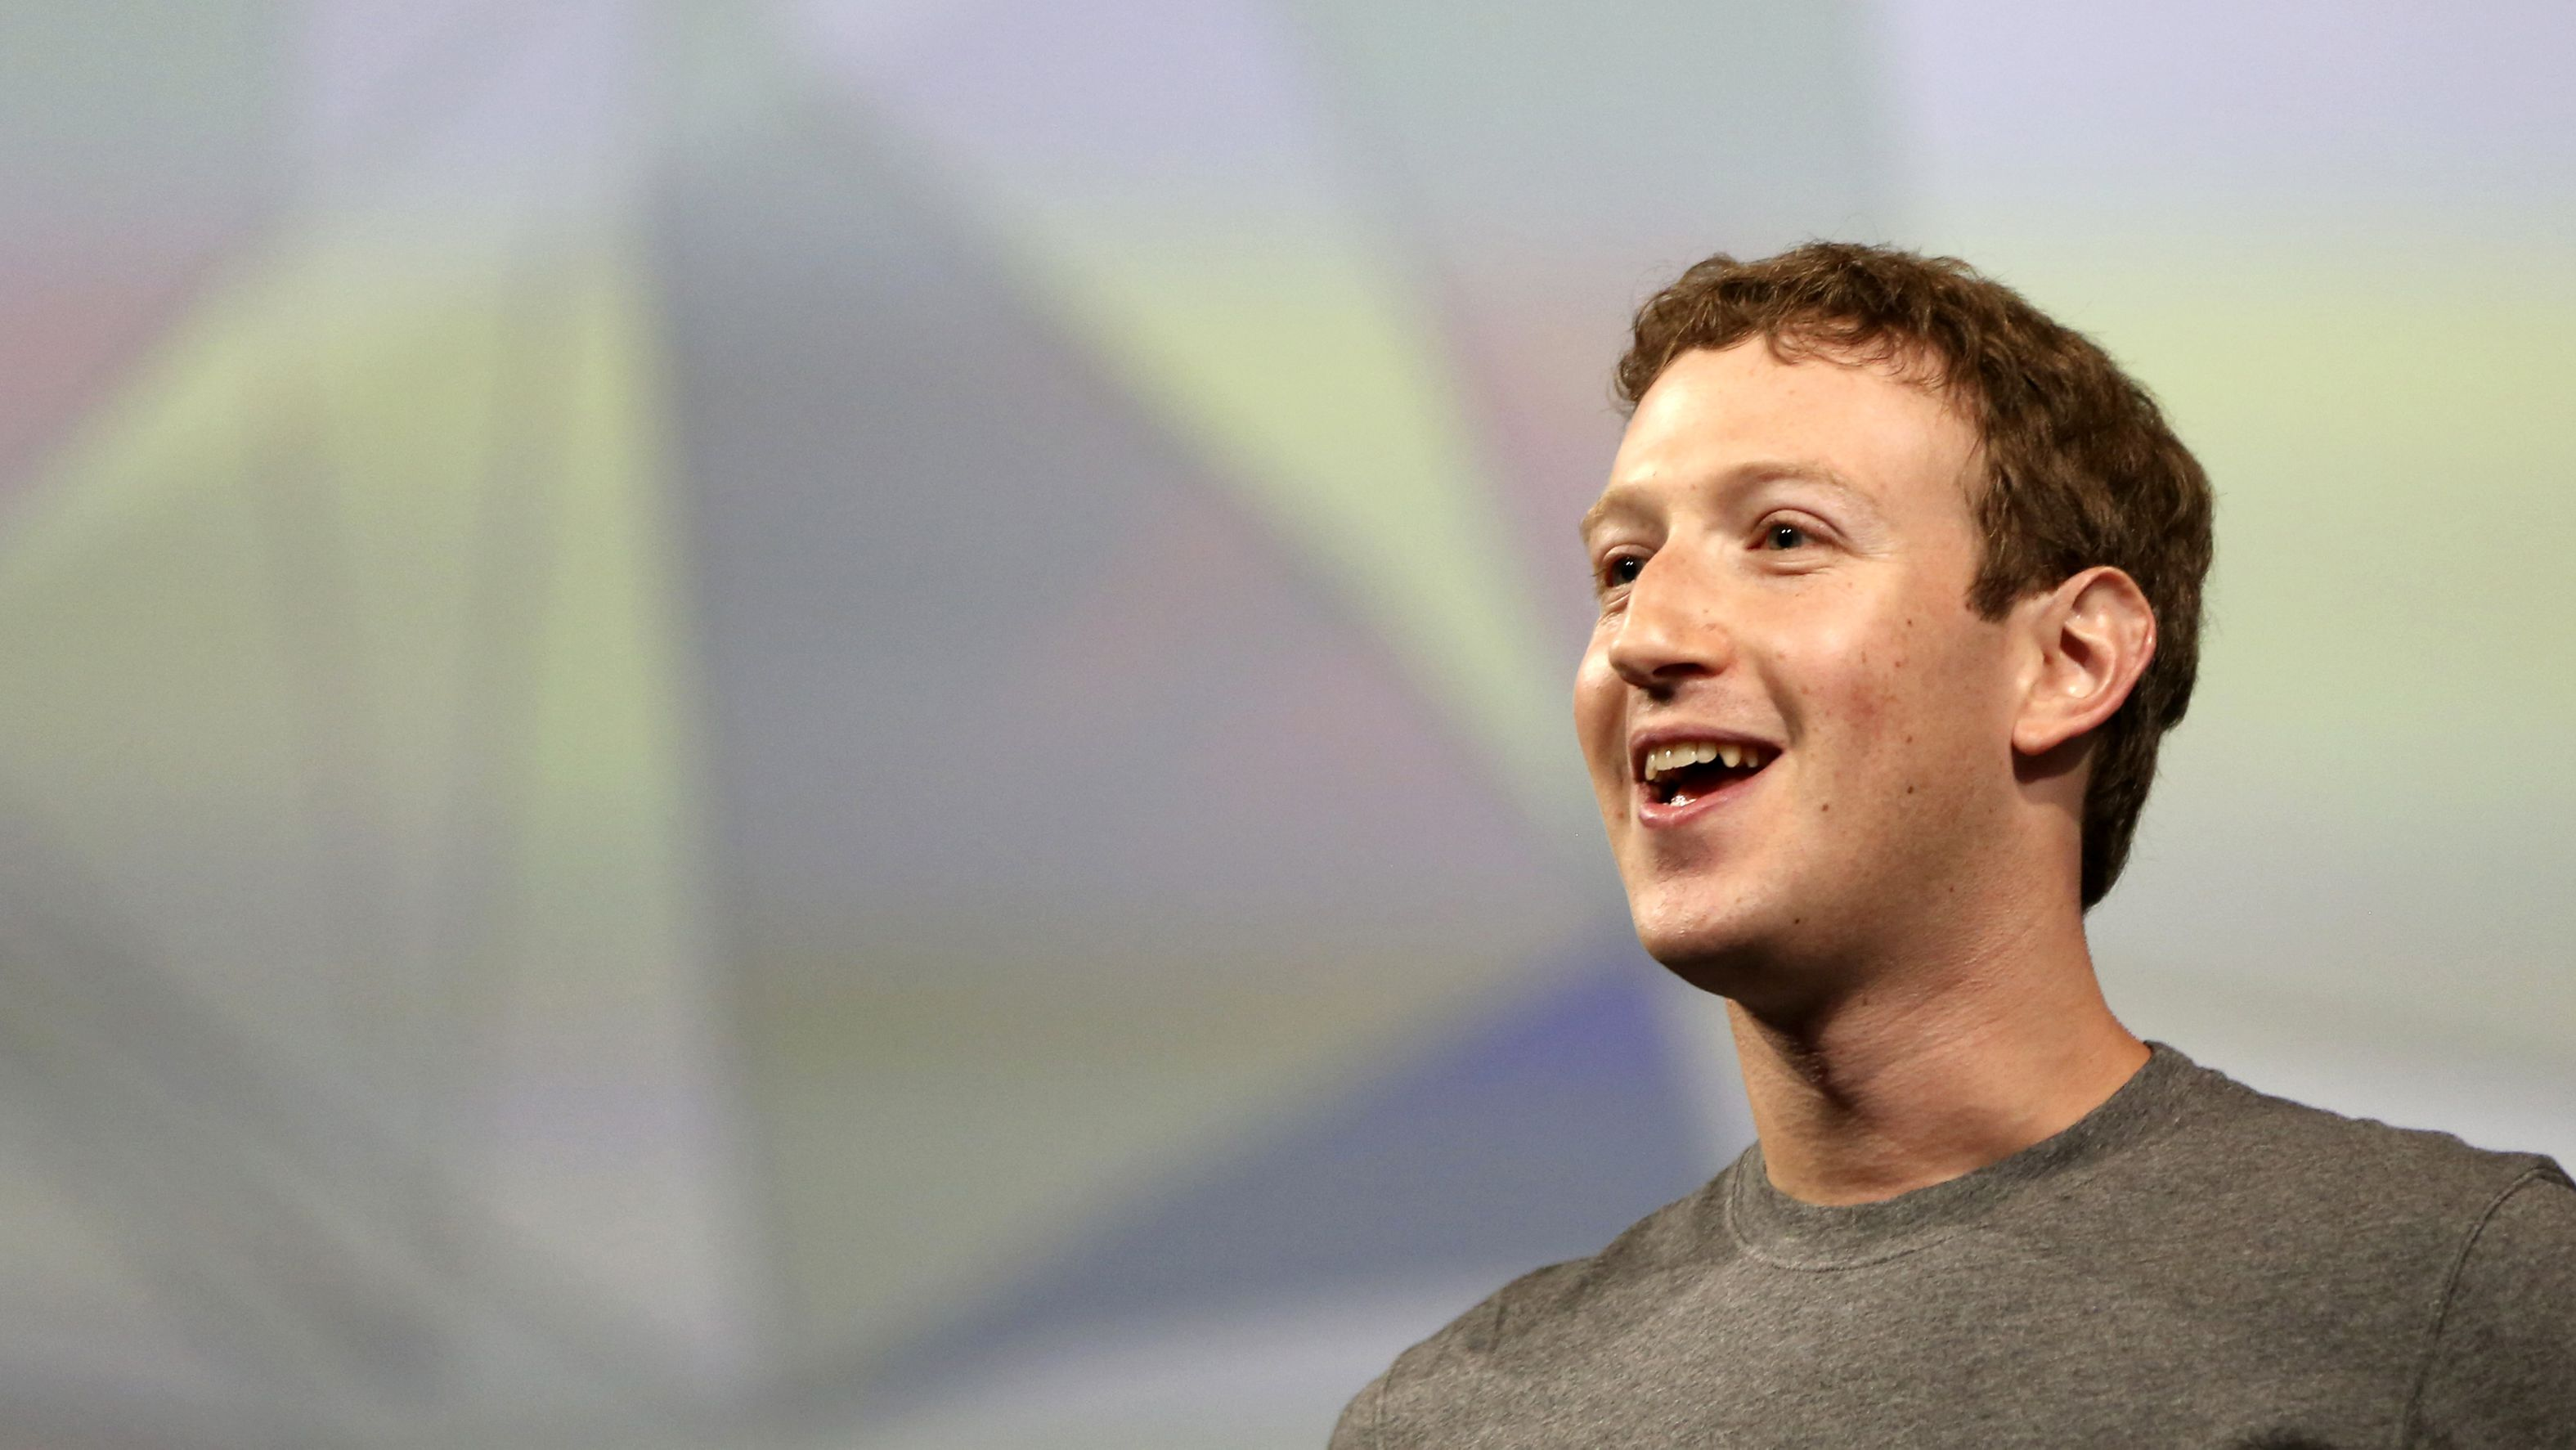 Facebook CEO Mark Zuckerberg addresses the crowd gathered during his keynote address at Facebook's f8 developers conference in San Francisco, California April 30, 2014.